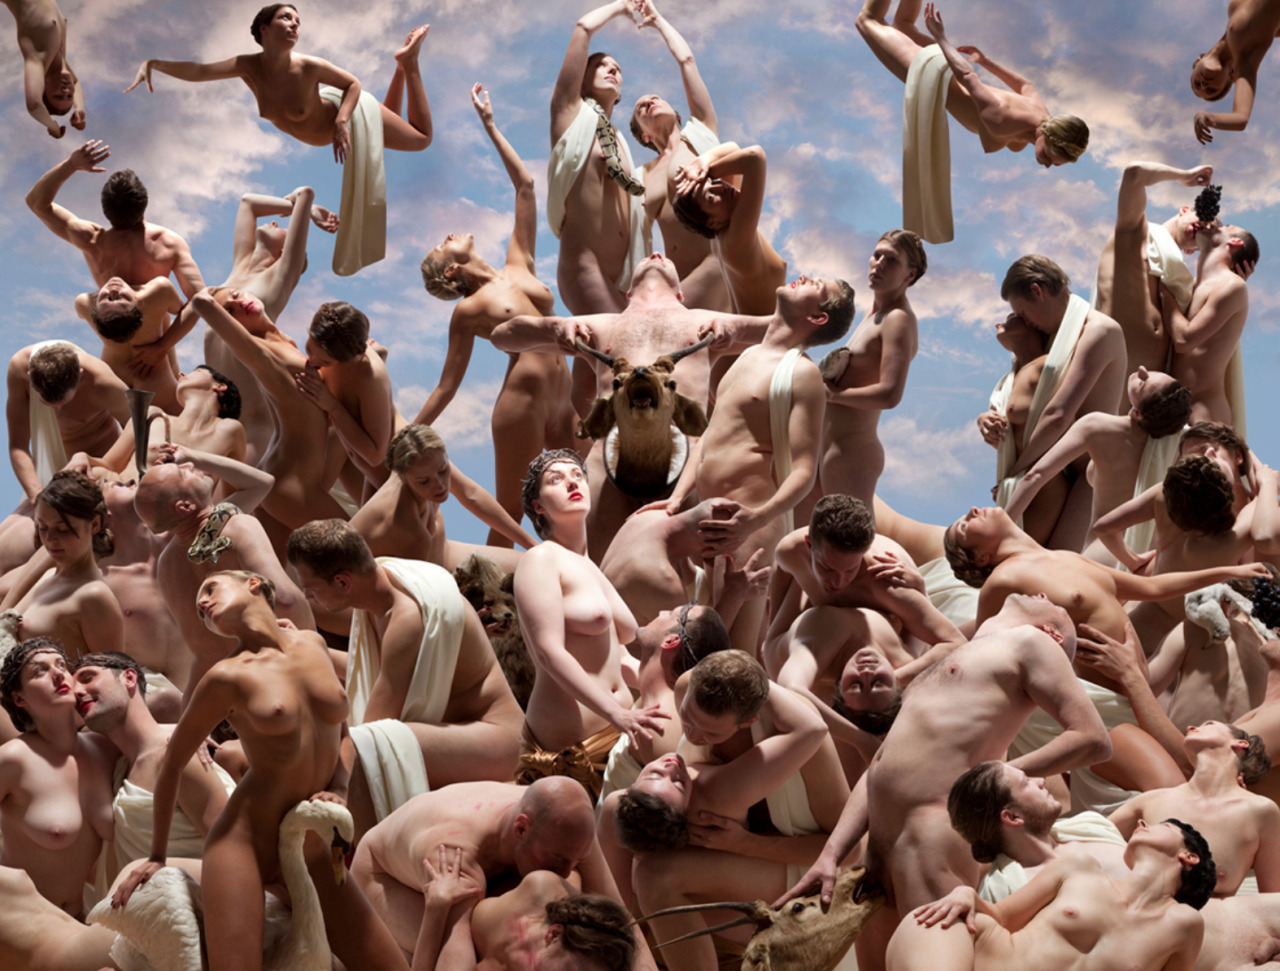 Claudia Rogge posted by Kreerath